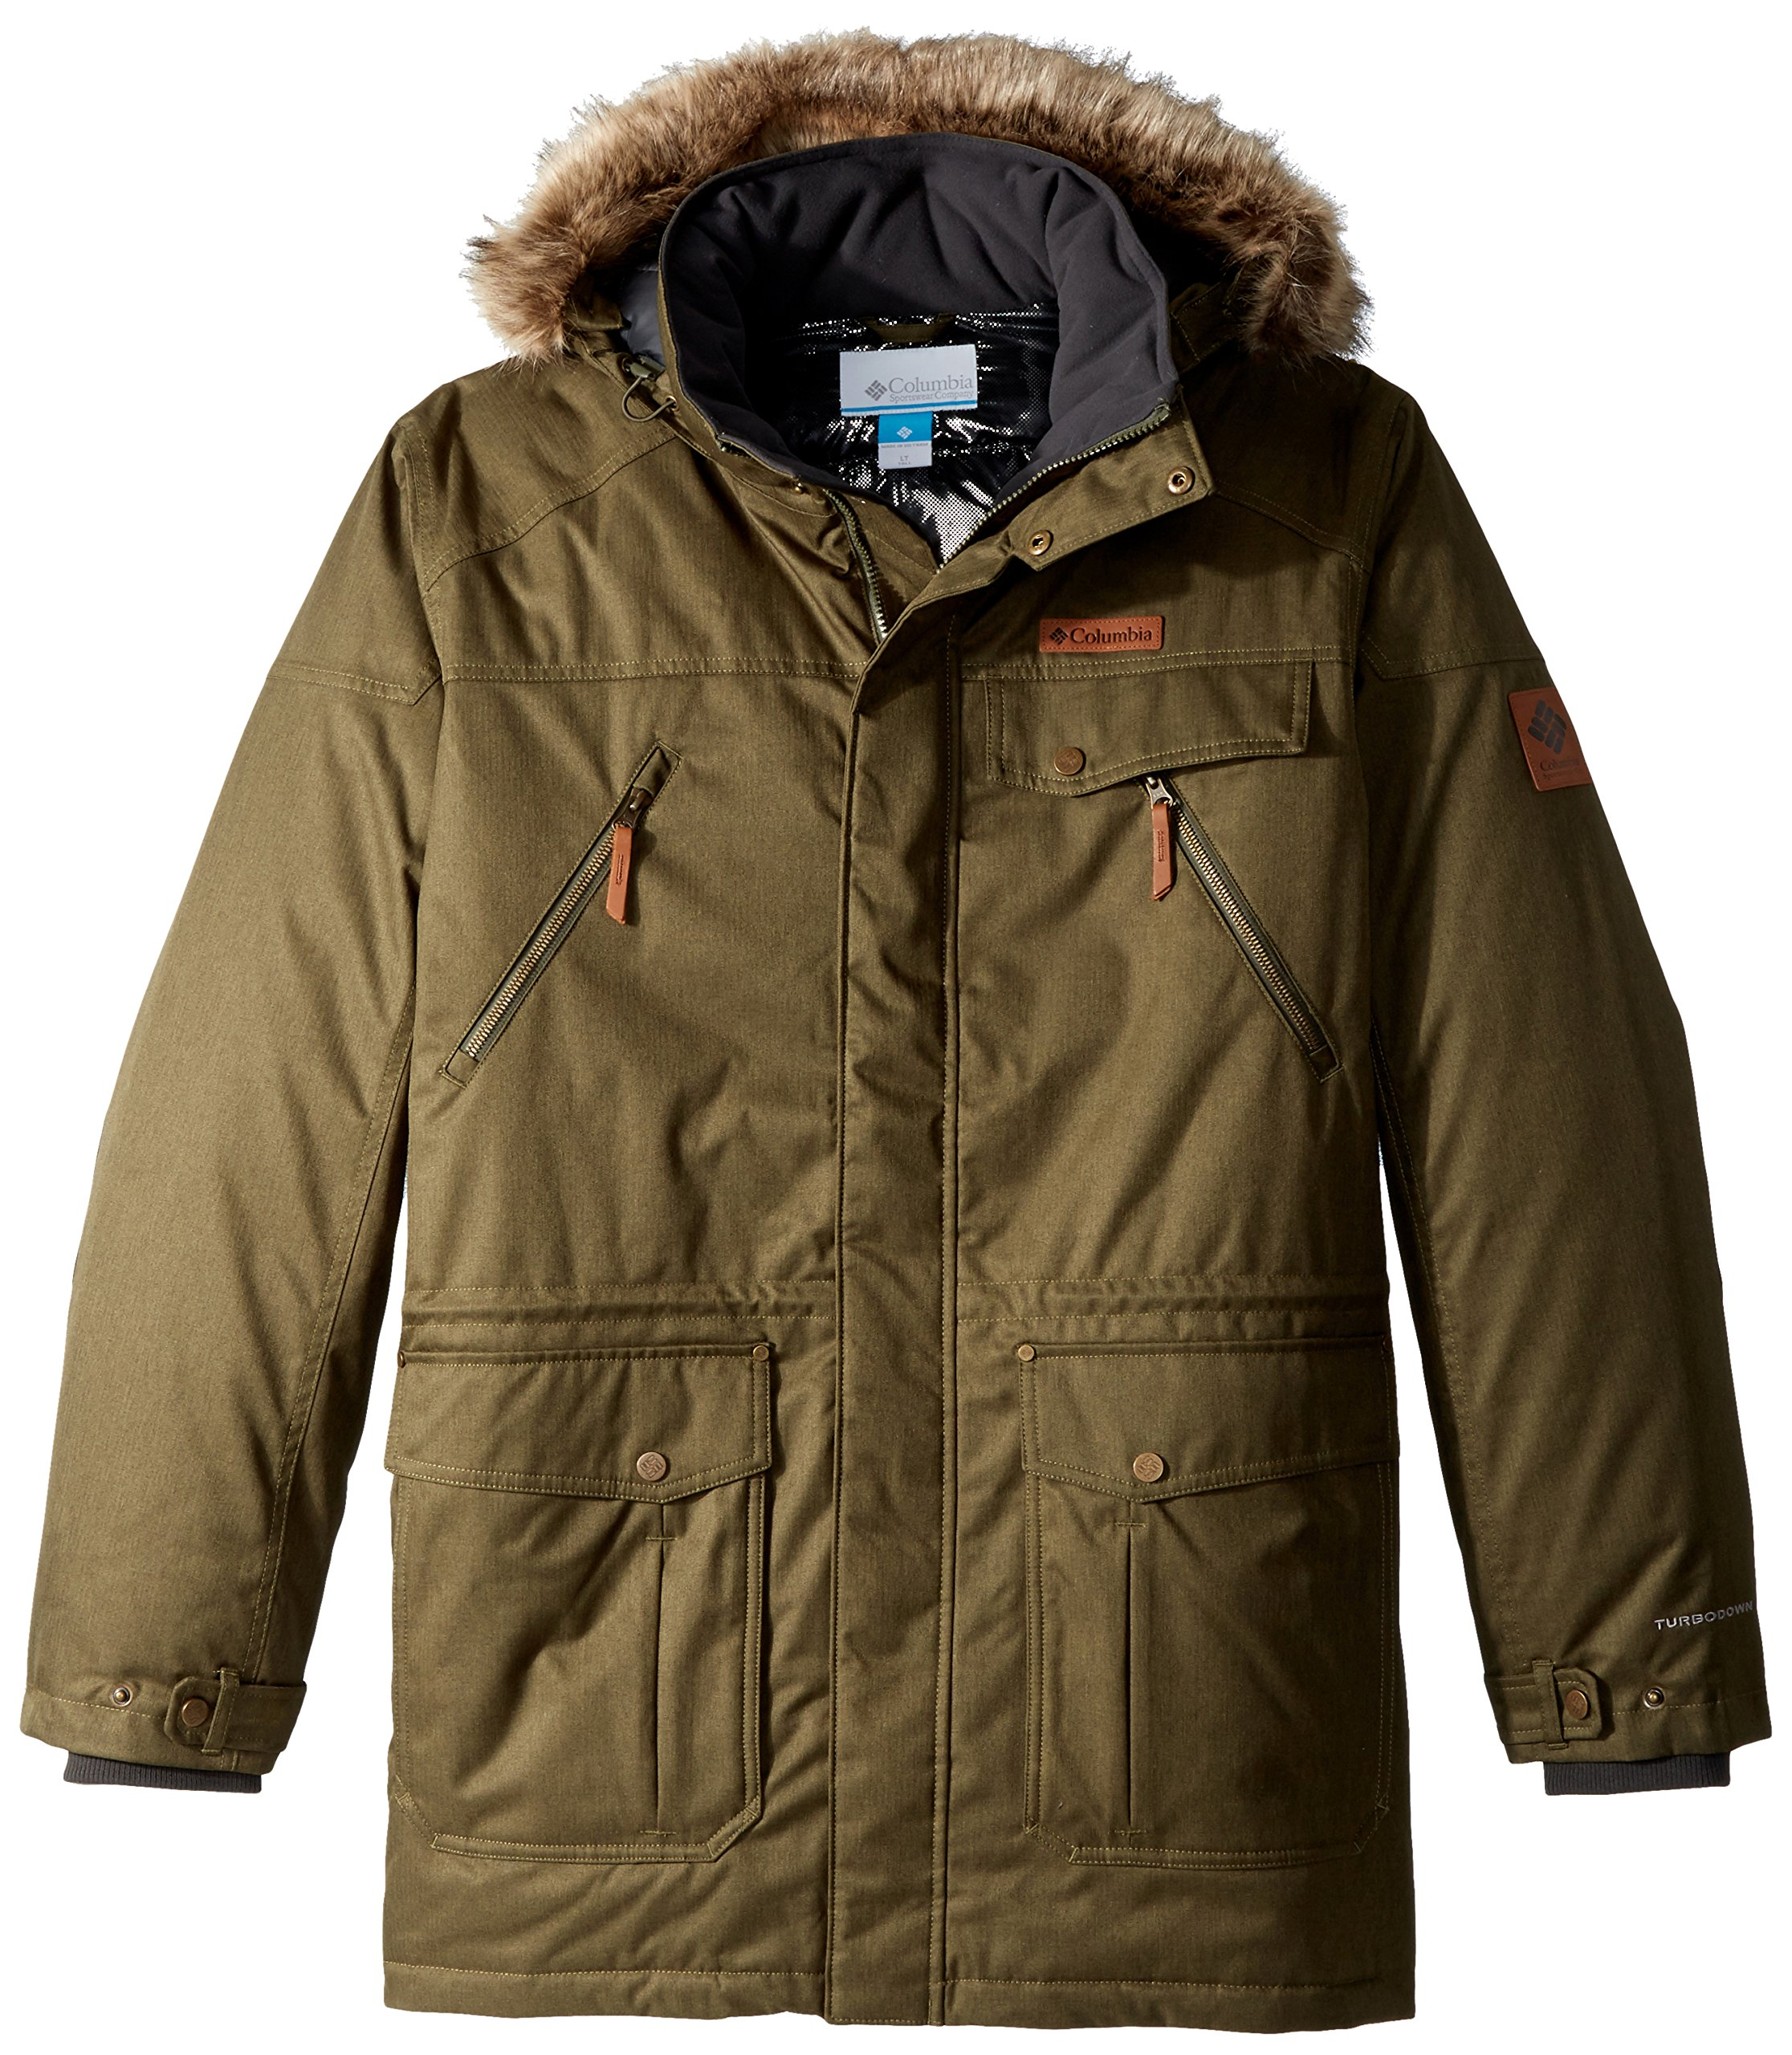 Columbia Men's Tall Barlow Pass 550 Turbodown Jacket, Large/Tall, Peat Moss